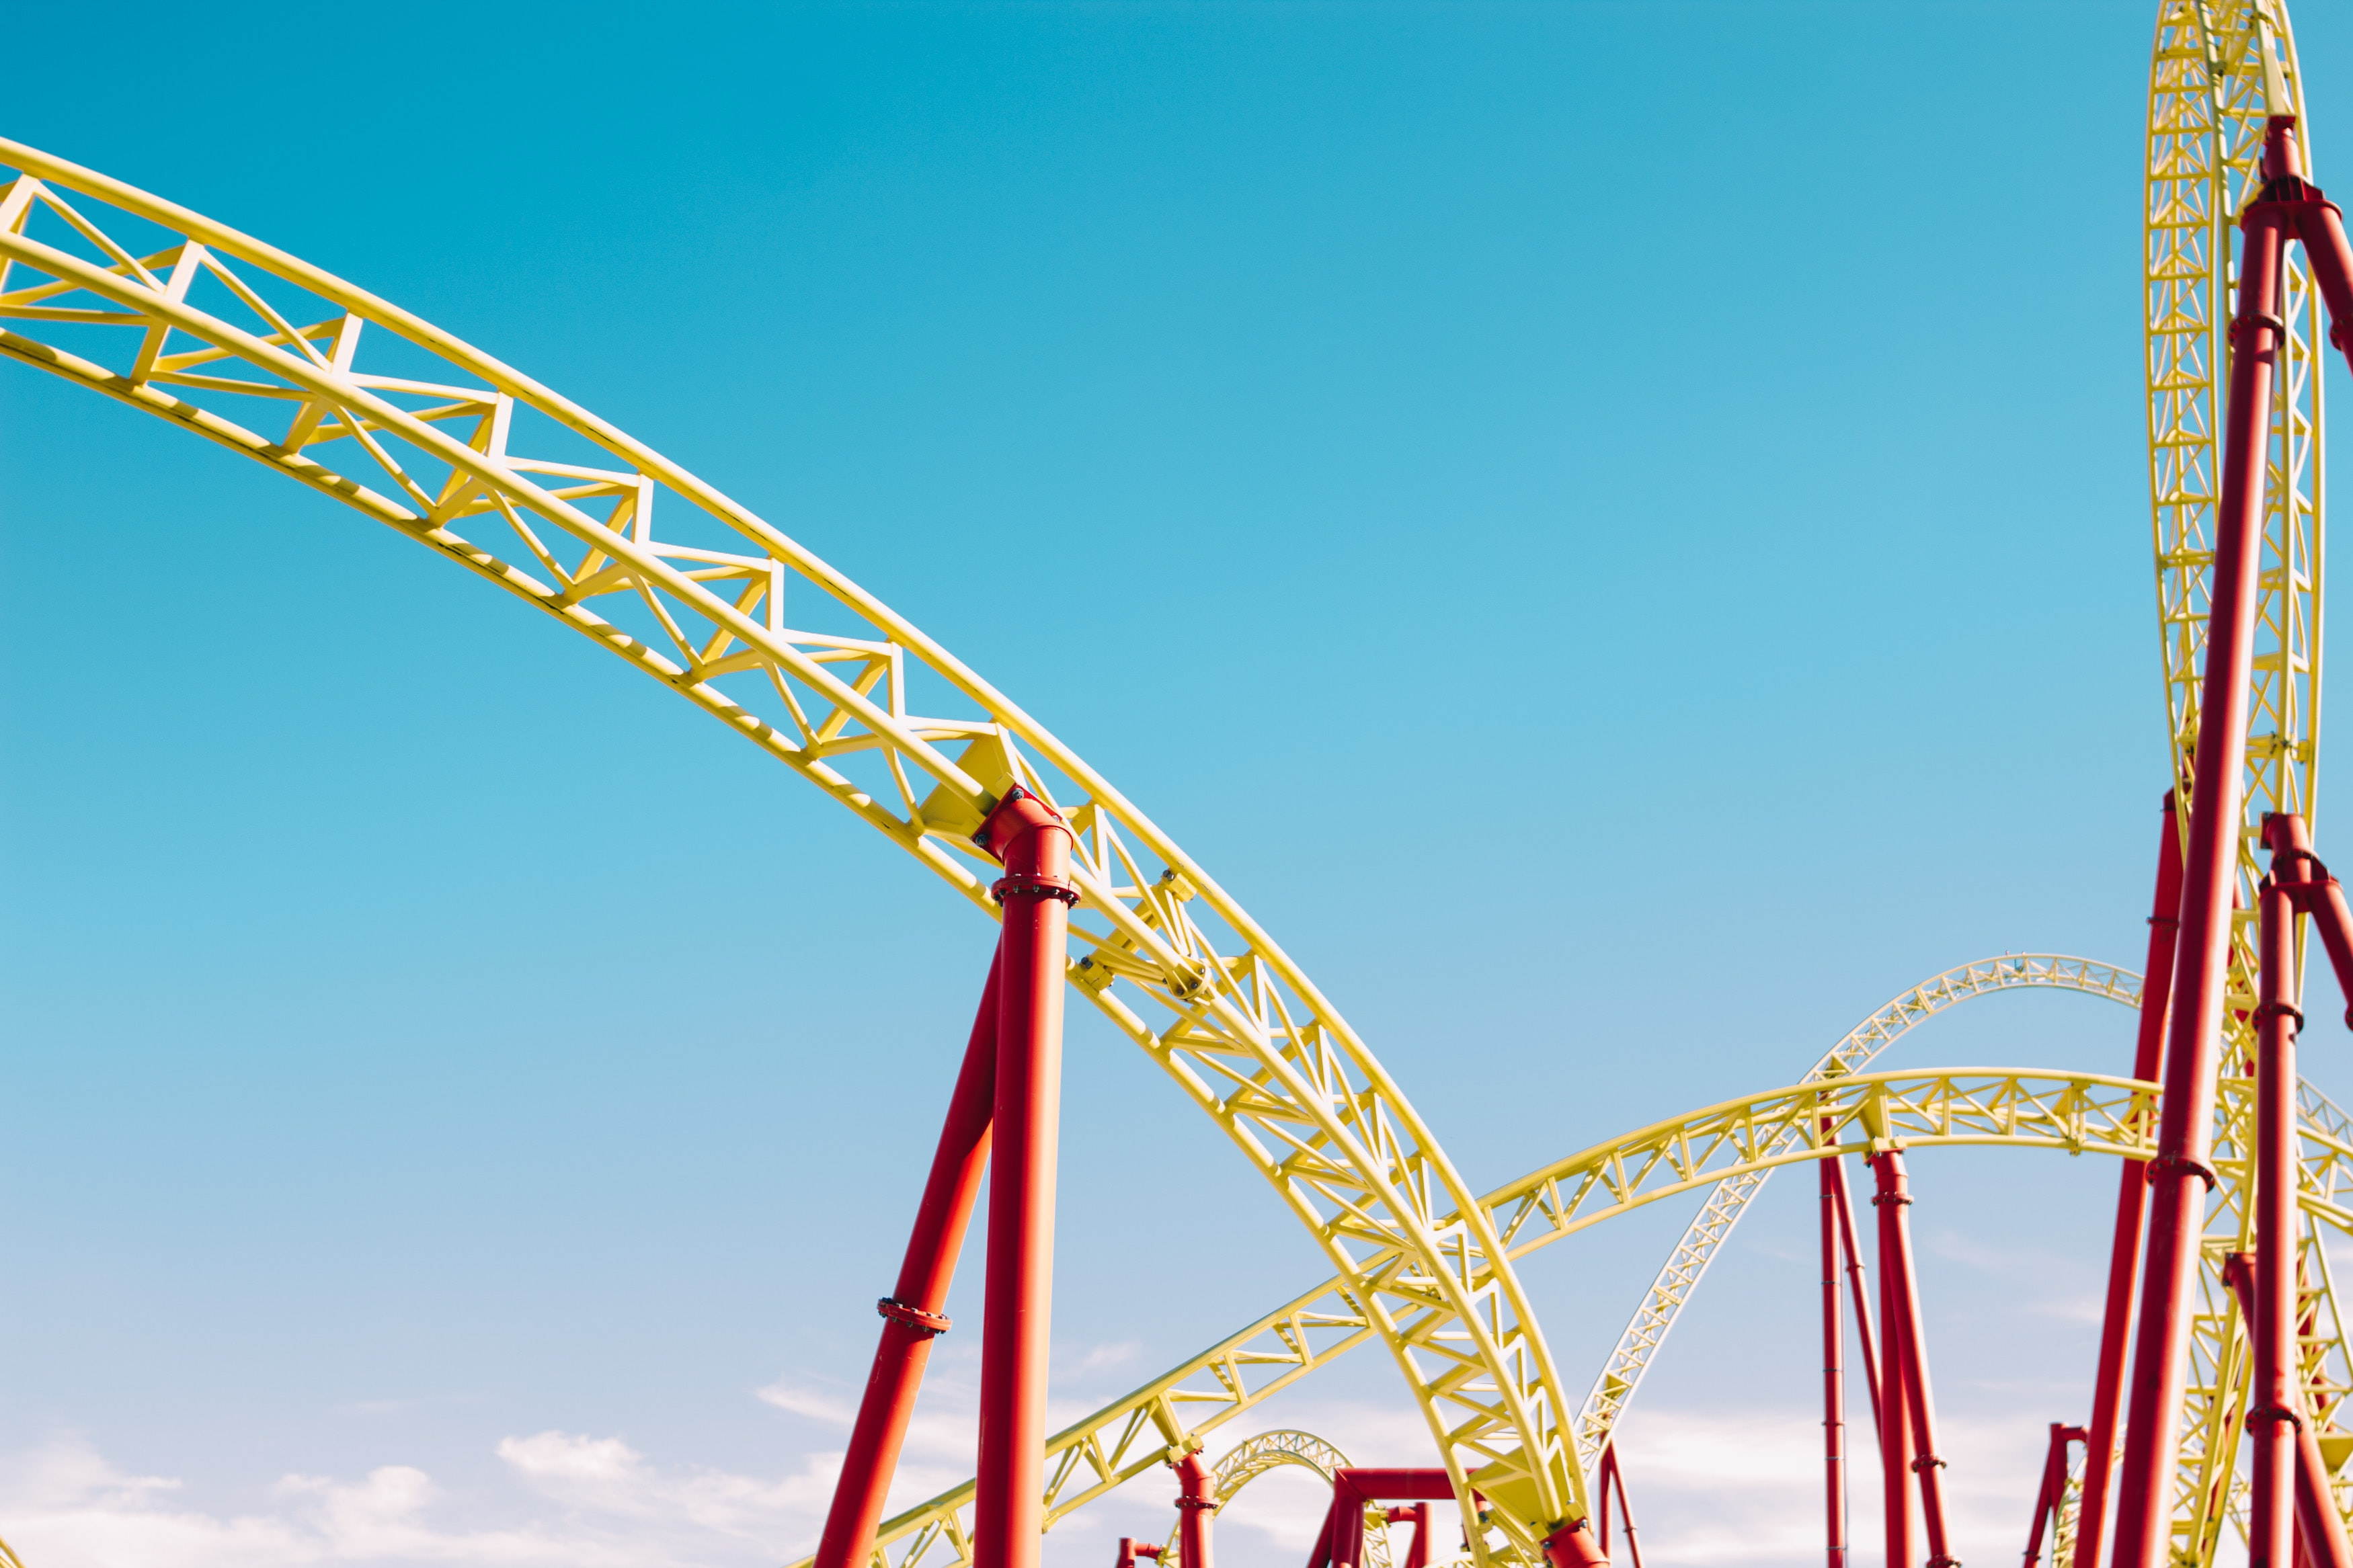 yellow and red roller coaster under blue sky at daytime